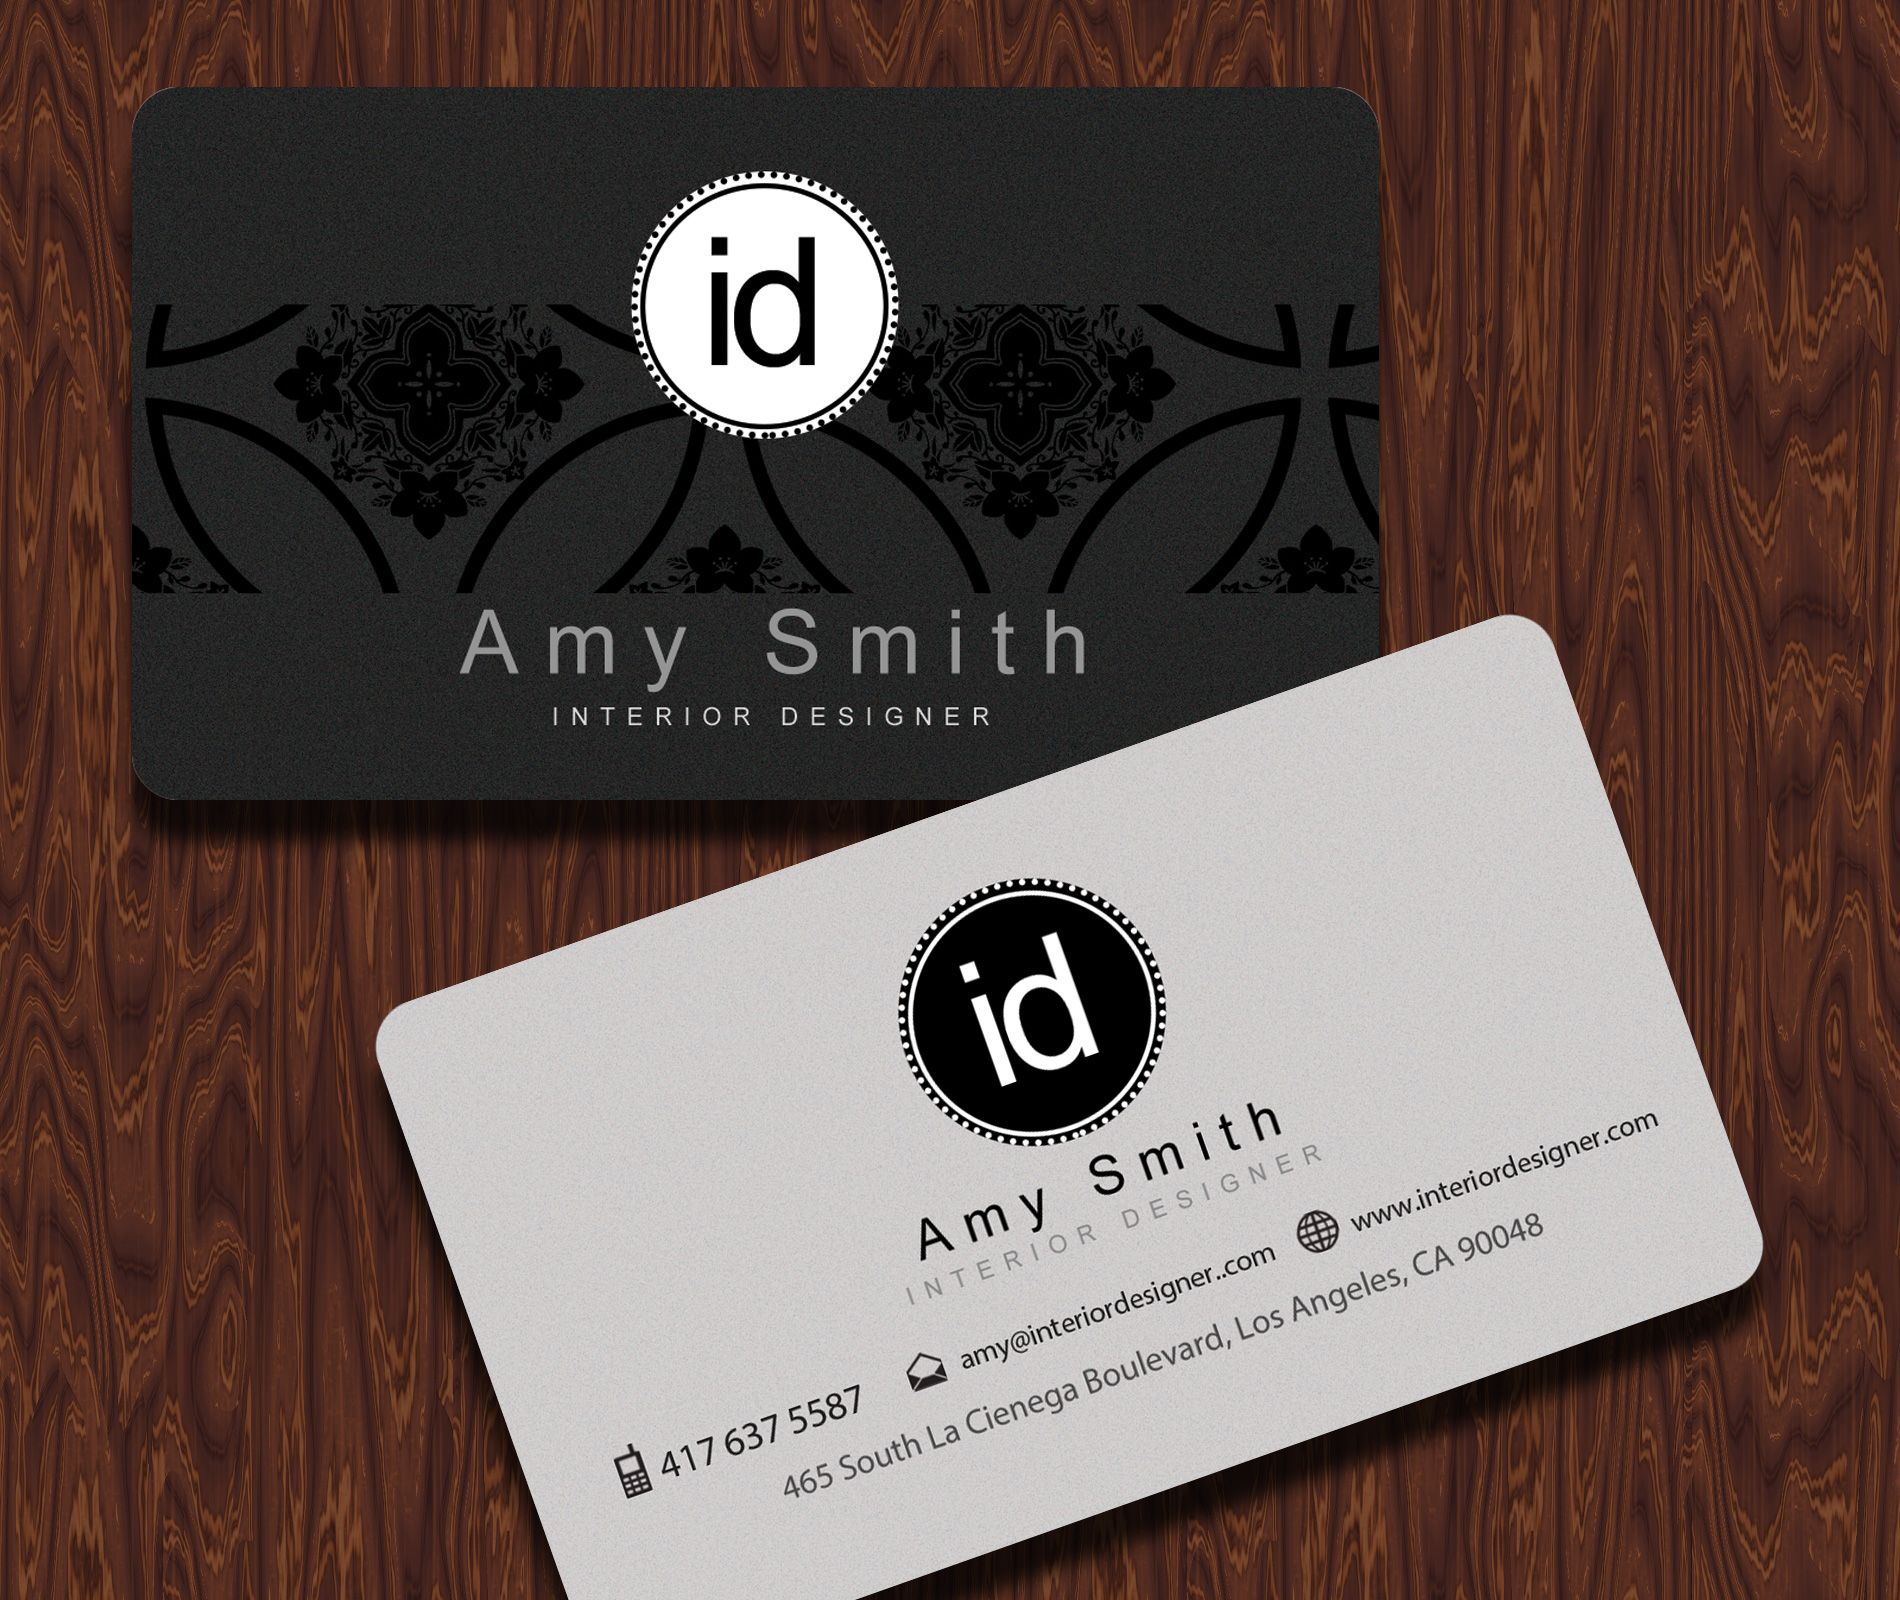 Interior Designer Business Cards Free Psd Business Card Templates Interior Design Business Cards Ideas Design Business Card Ideas Business Card Design